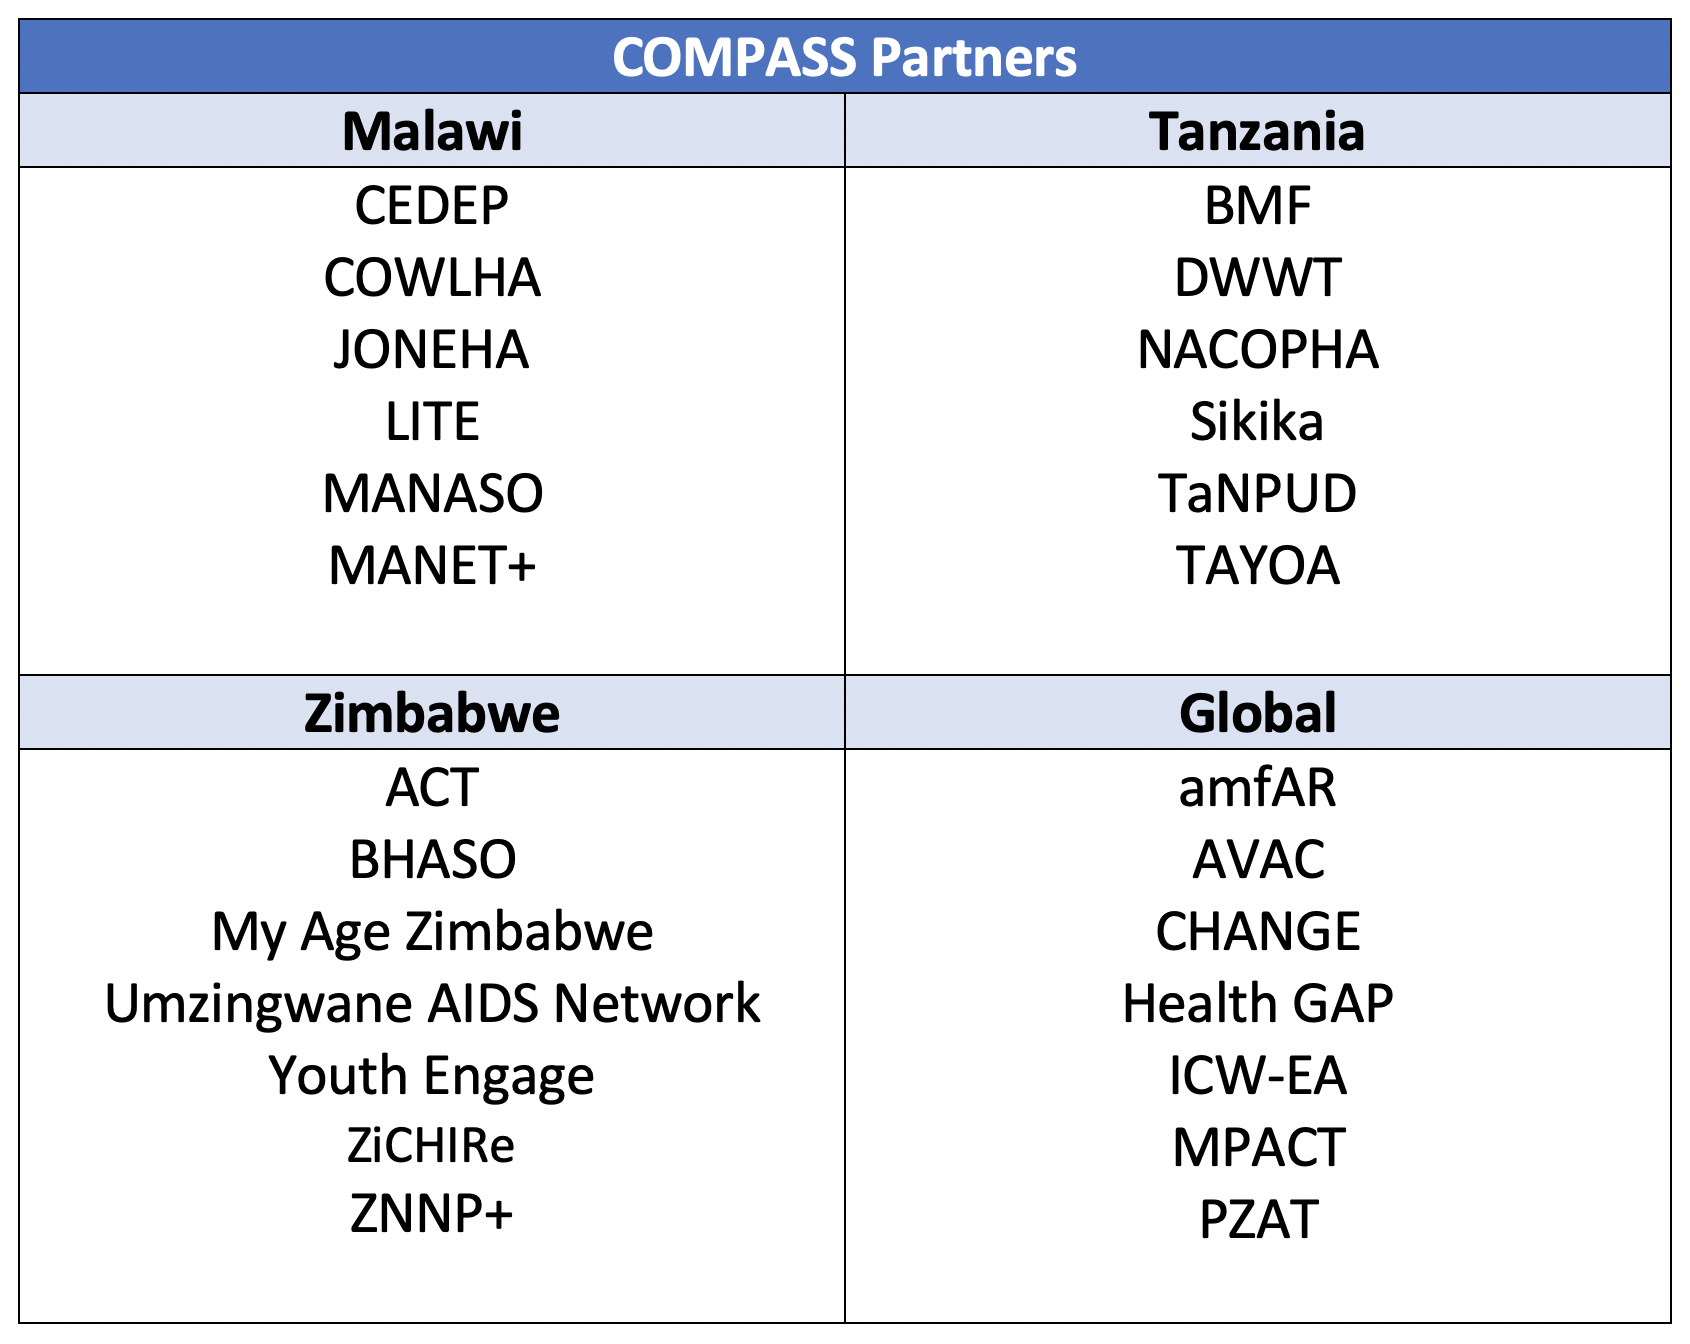 table of COMPASS partners